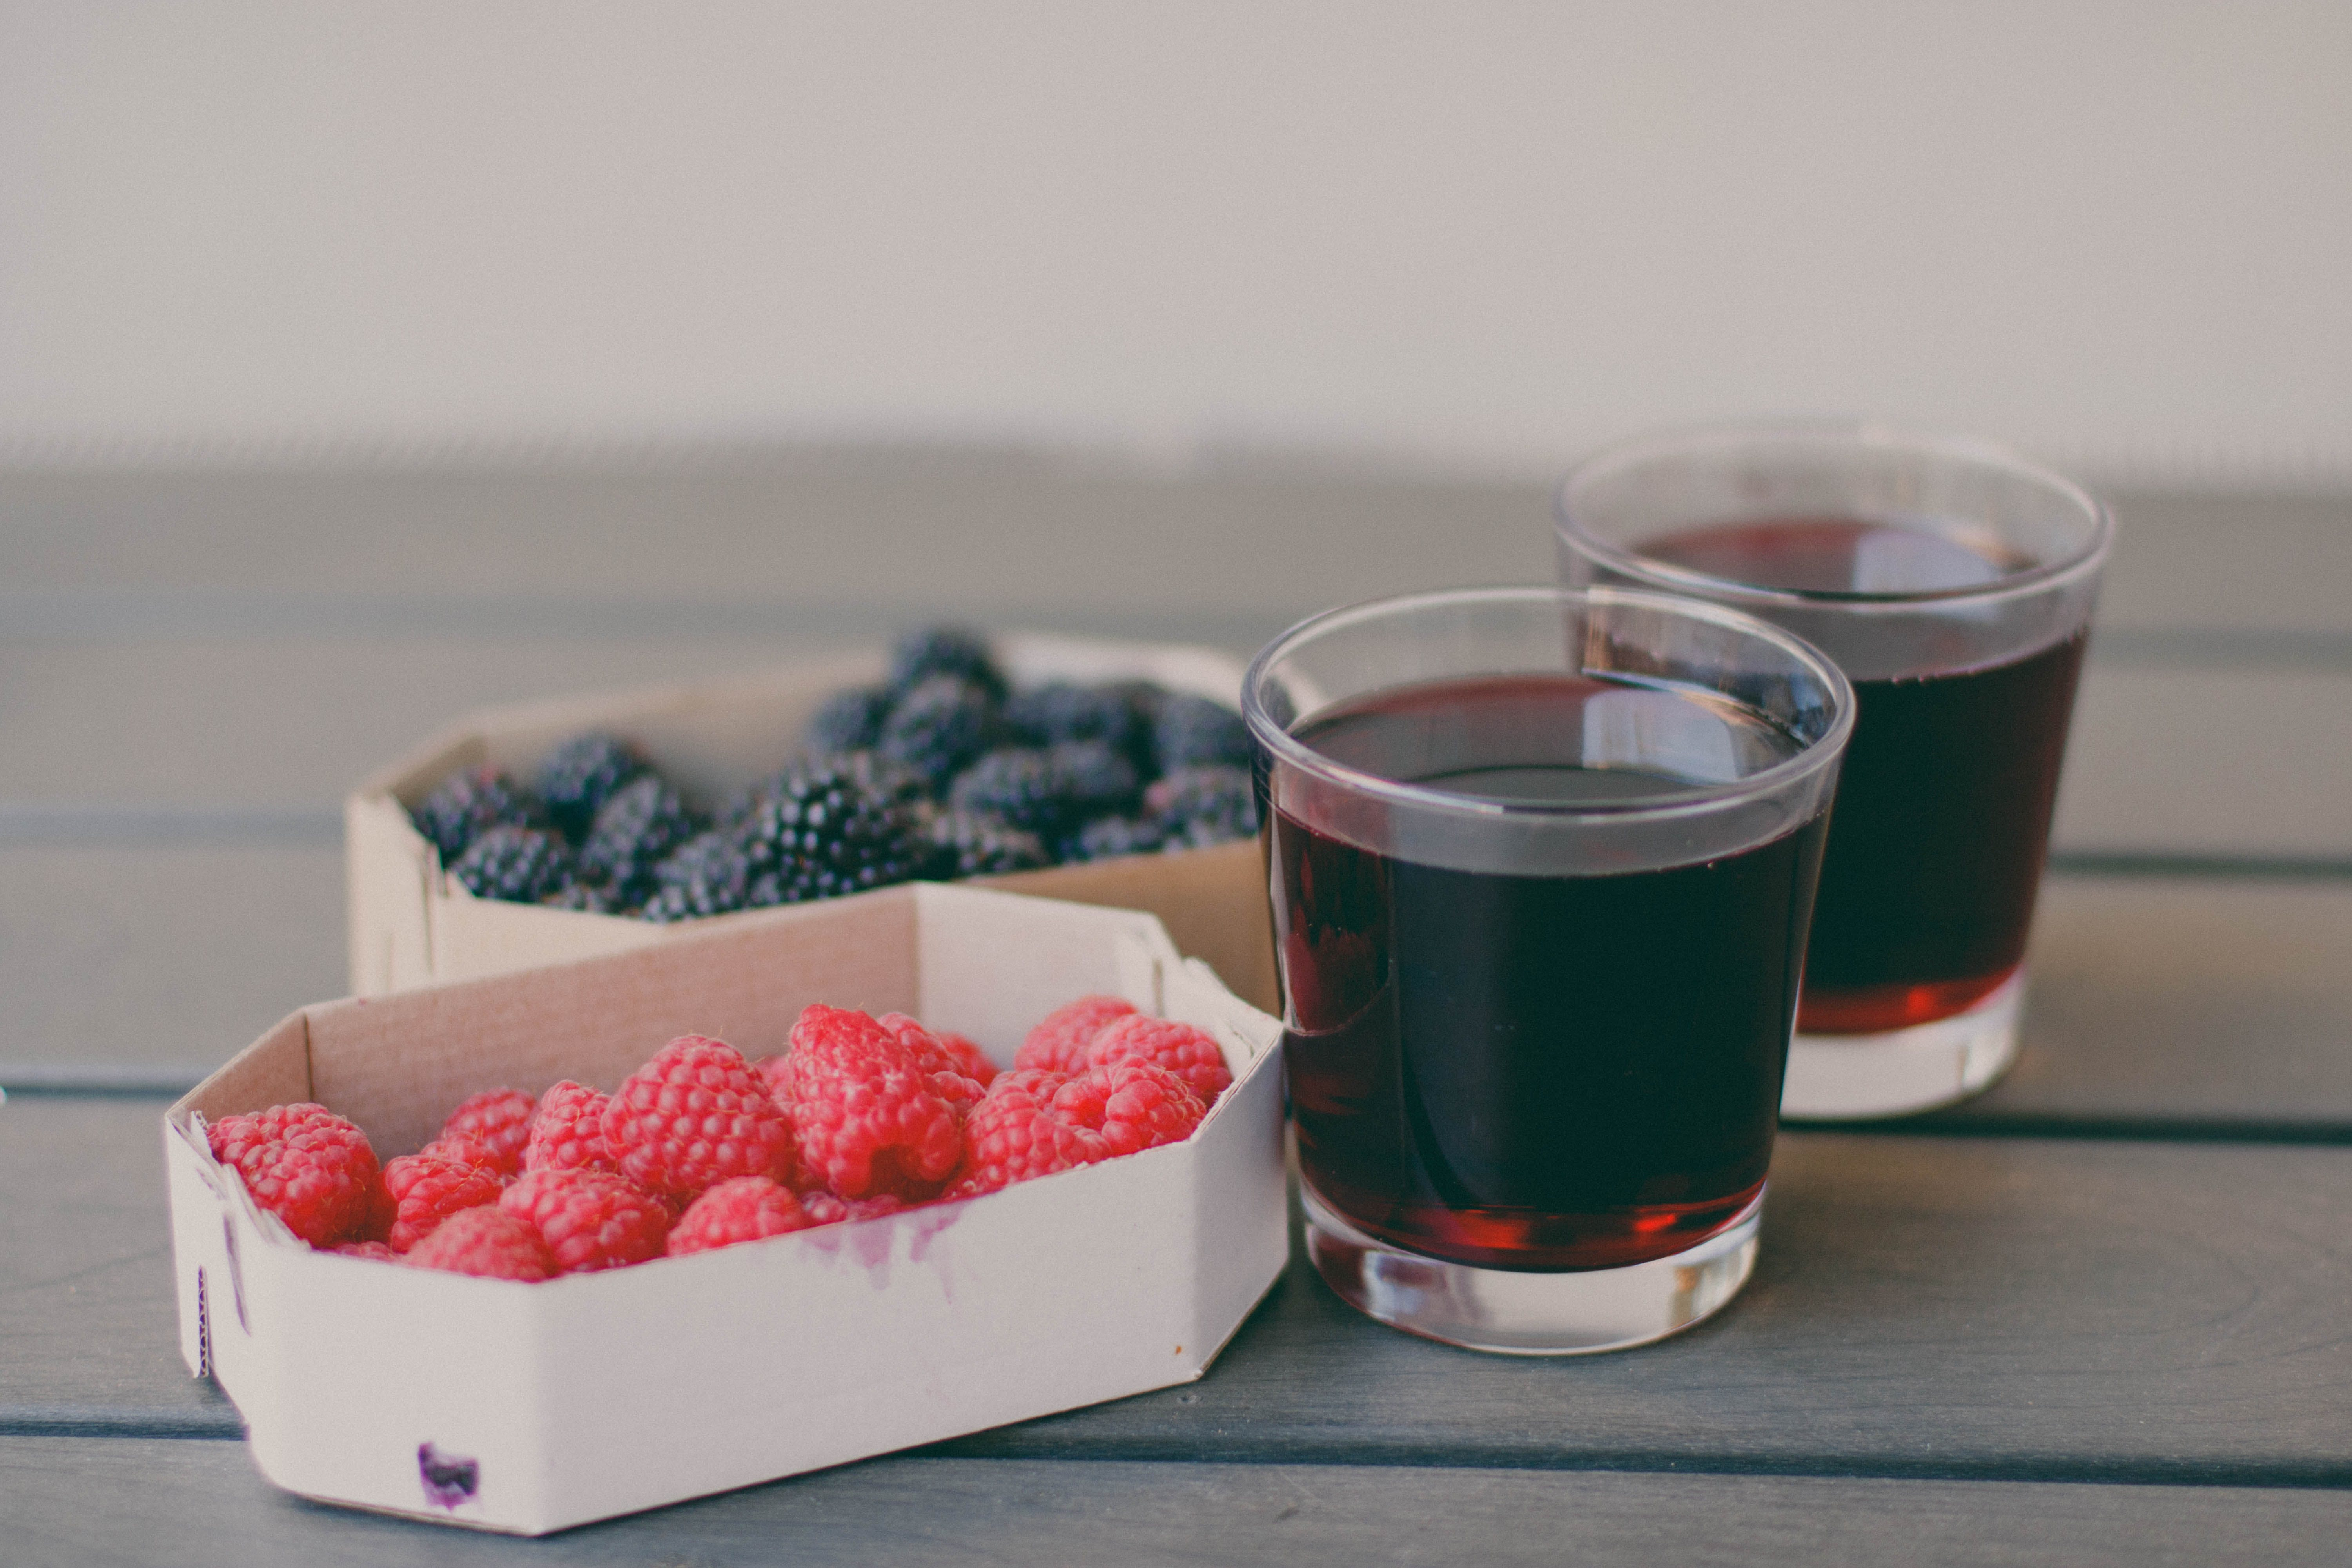 Two Drinking Glasses Filled With Raspberry and Blueberry Fruit Juices